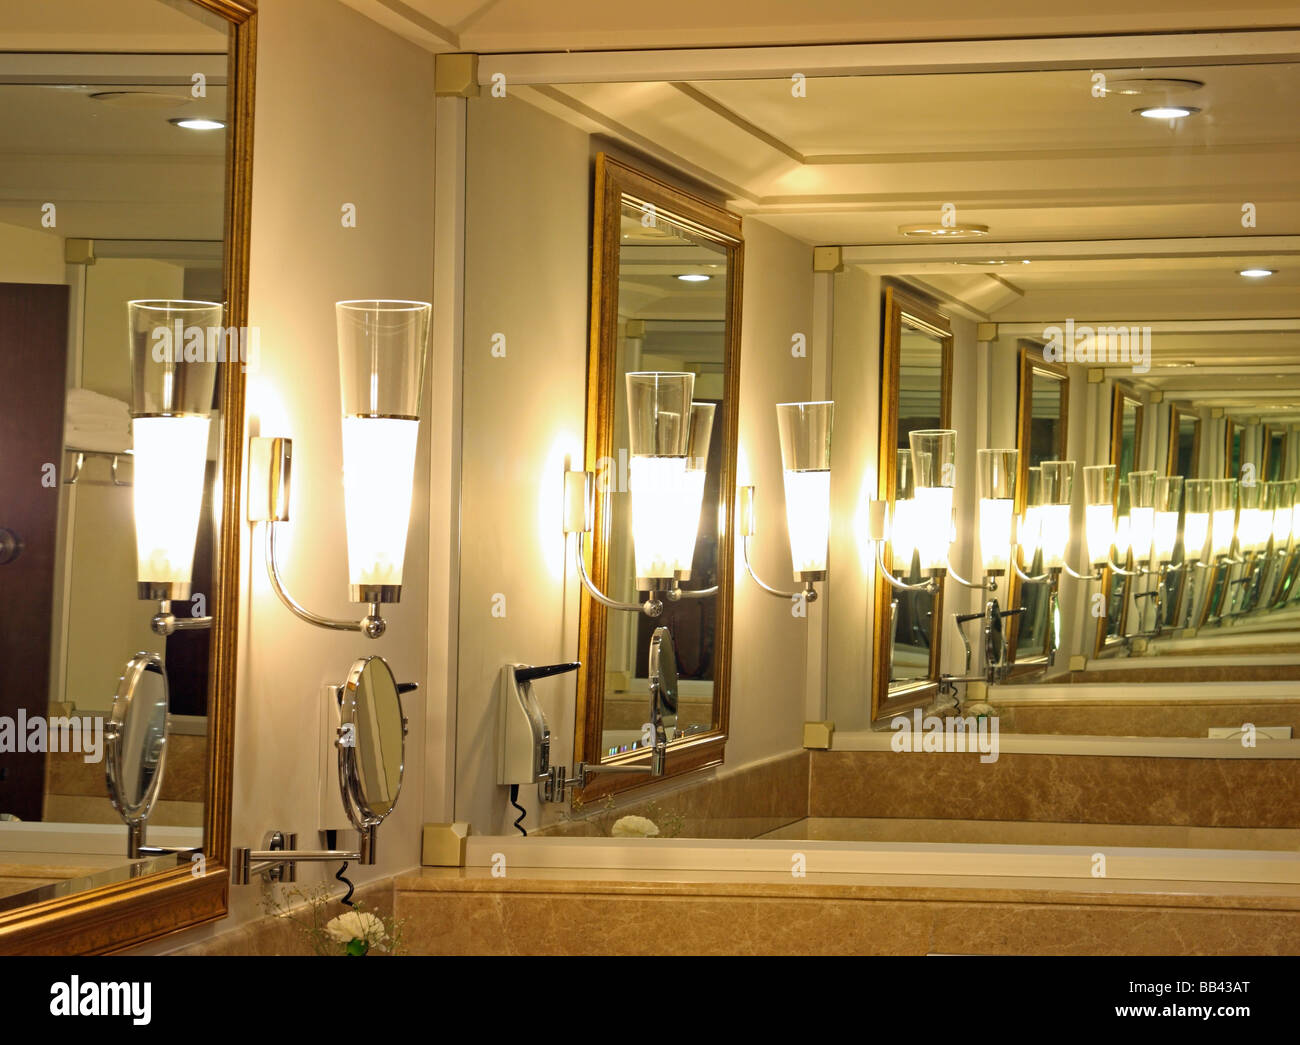 Infinity reflection of lamps in mirrors stock photo for Reflection miroir